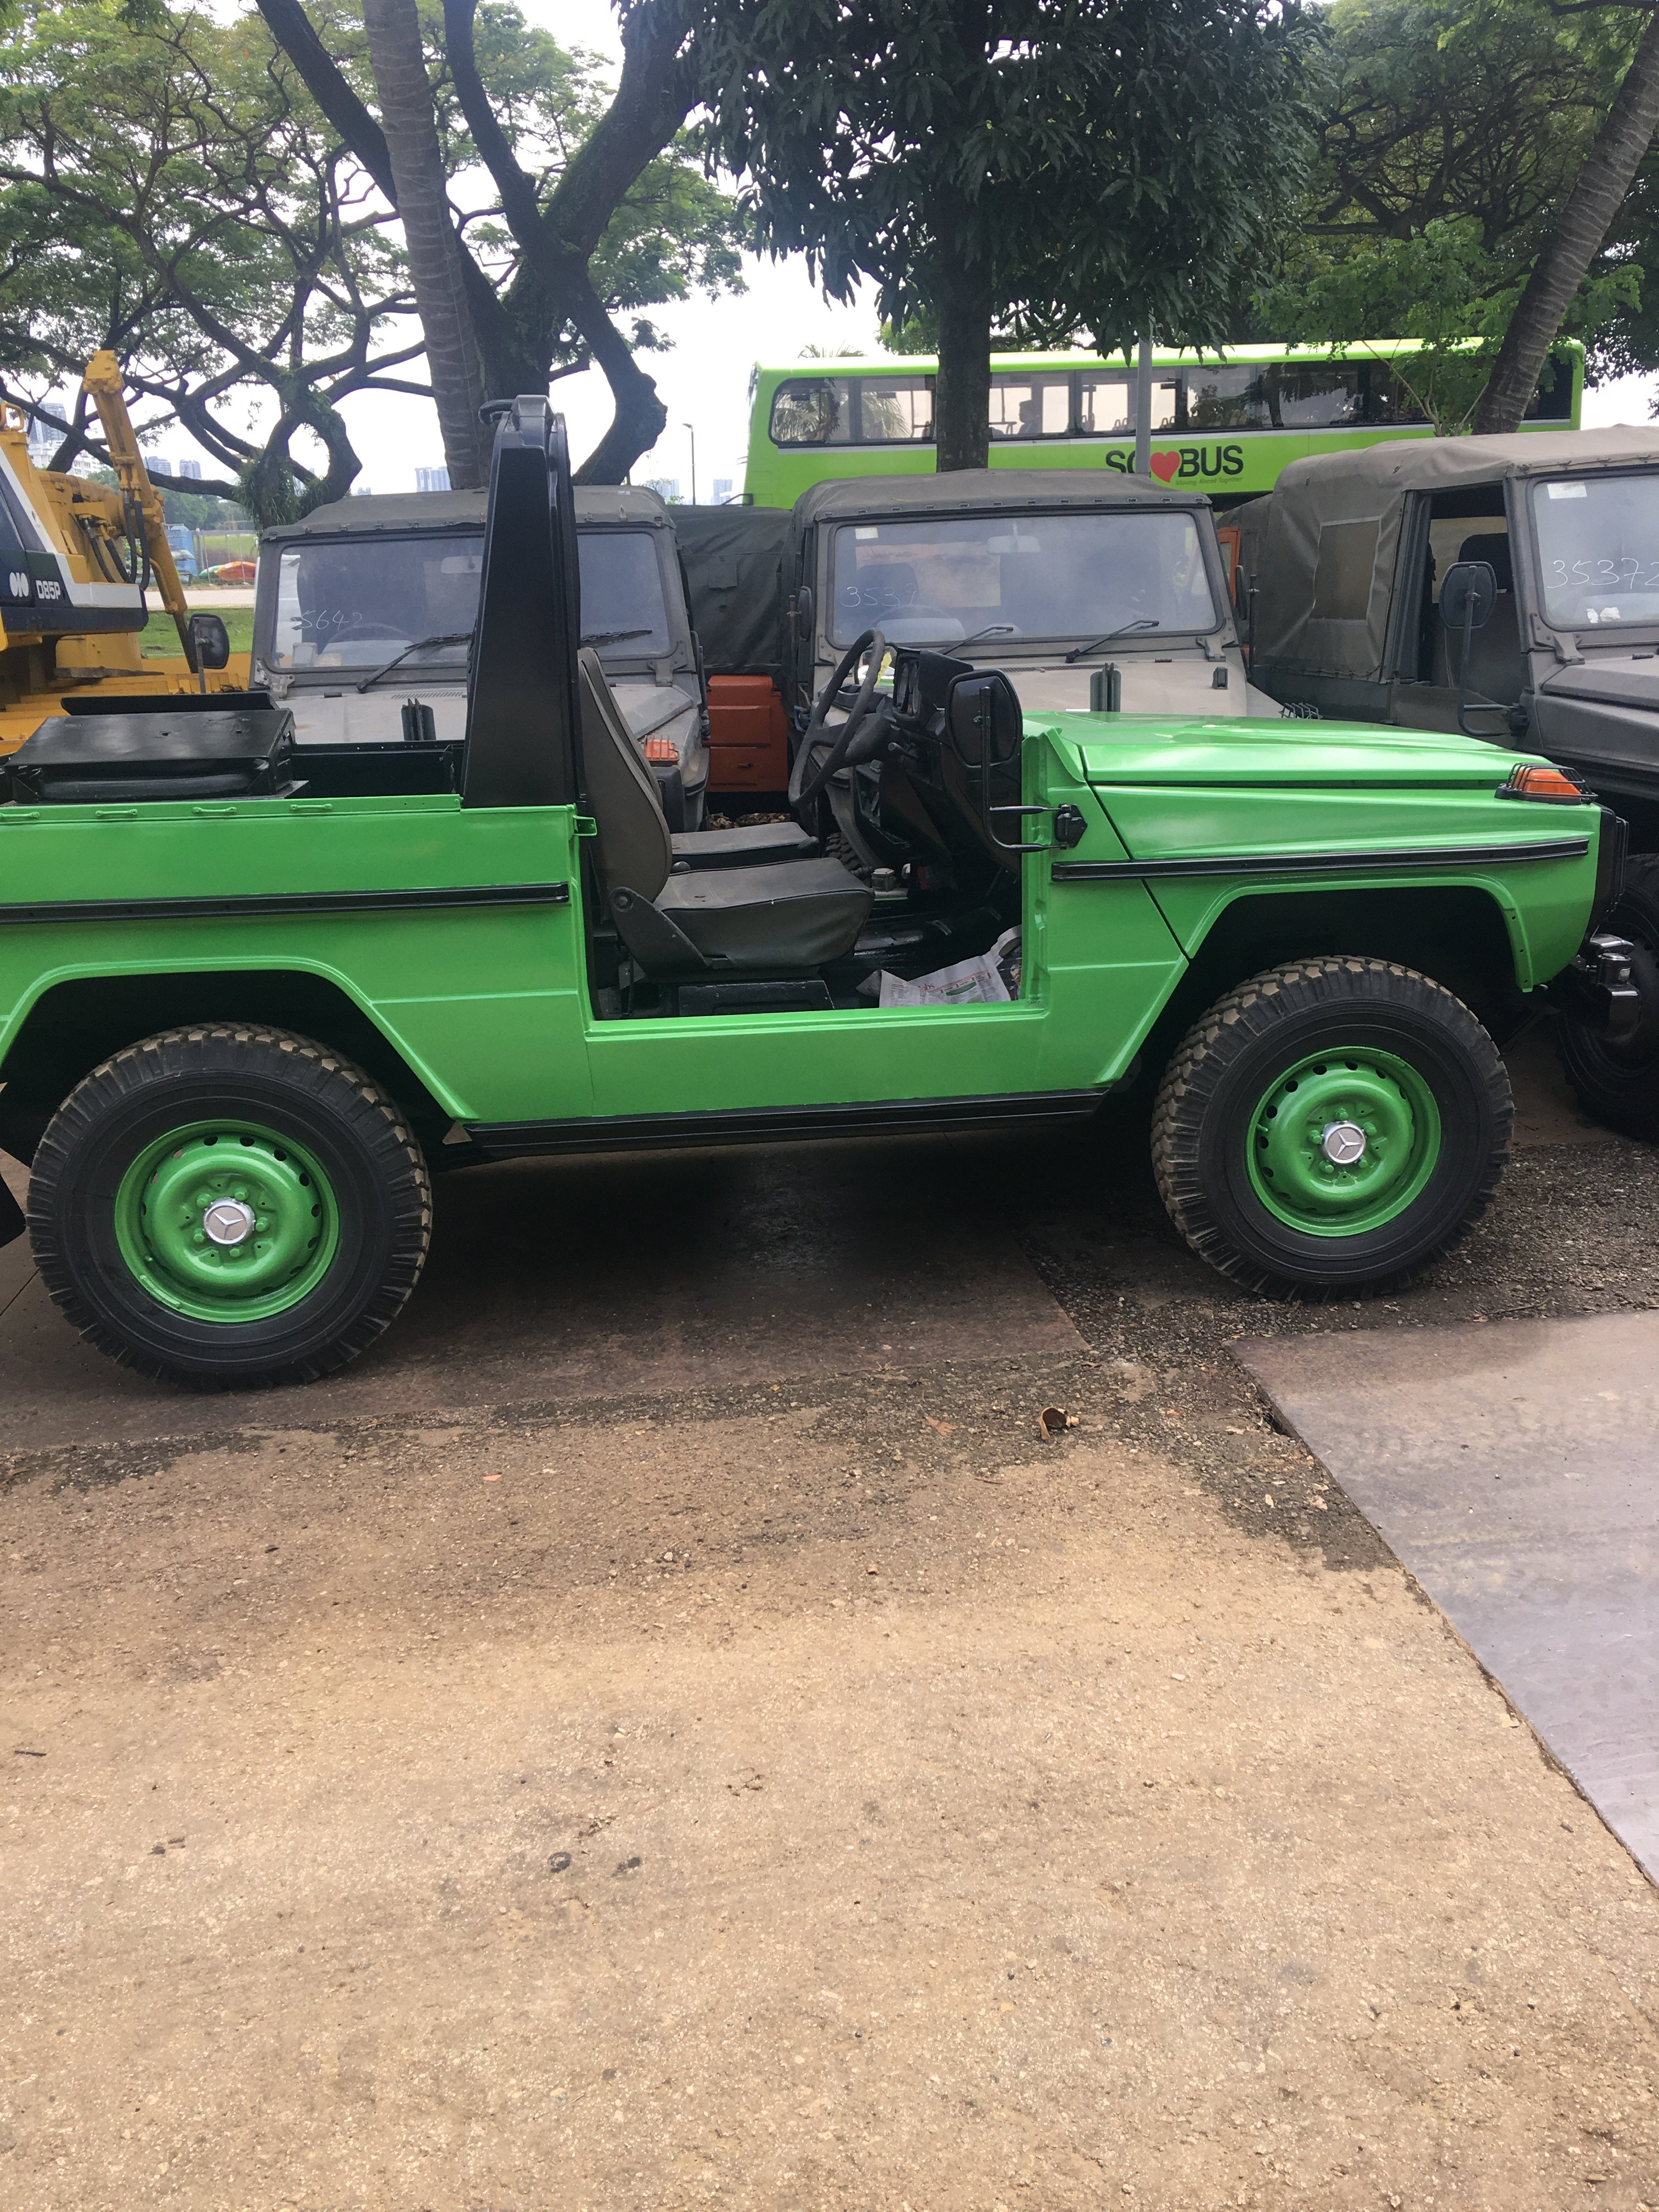 1987 MERCEDES BENZ G240 MILITARY SCOUT VEHICLE For Sale (picture 6 of 6)